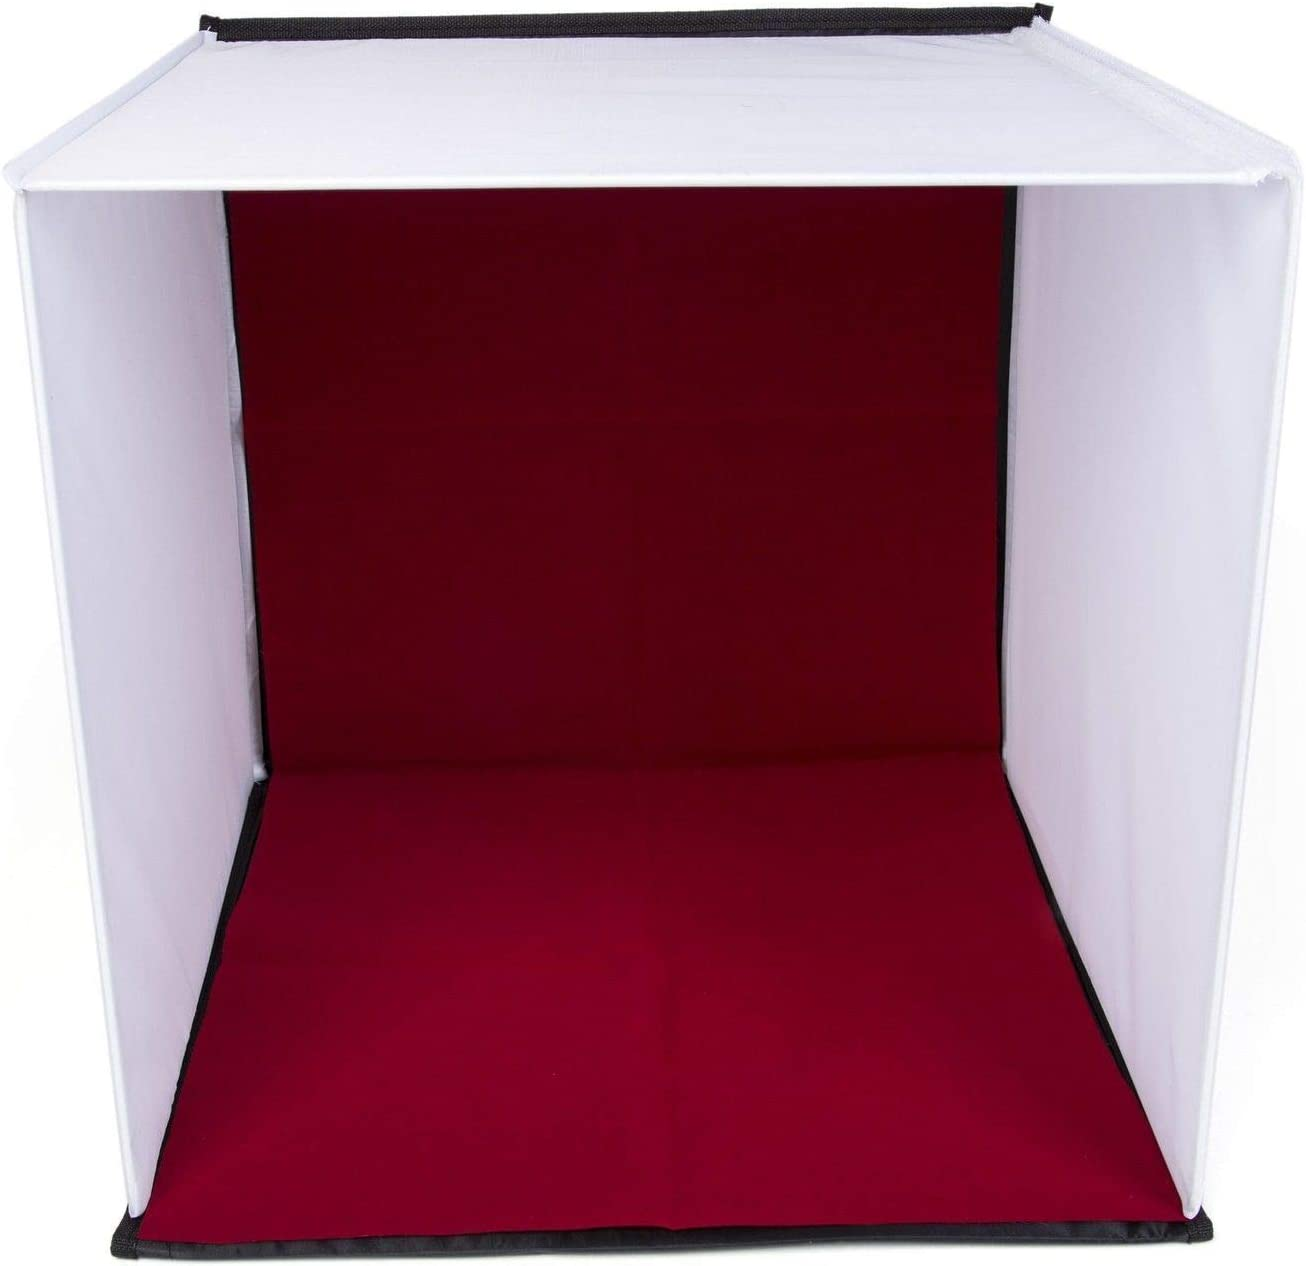 20 X 20 X 20 The Photo kit Includes a Special Designed Carrying case for Convenient Storage and Travel. Dj/_siphraya Photo Shooting Box Tent with 4 Colors Background Made of Plastic.Size